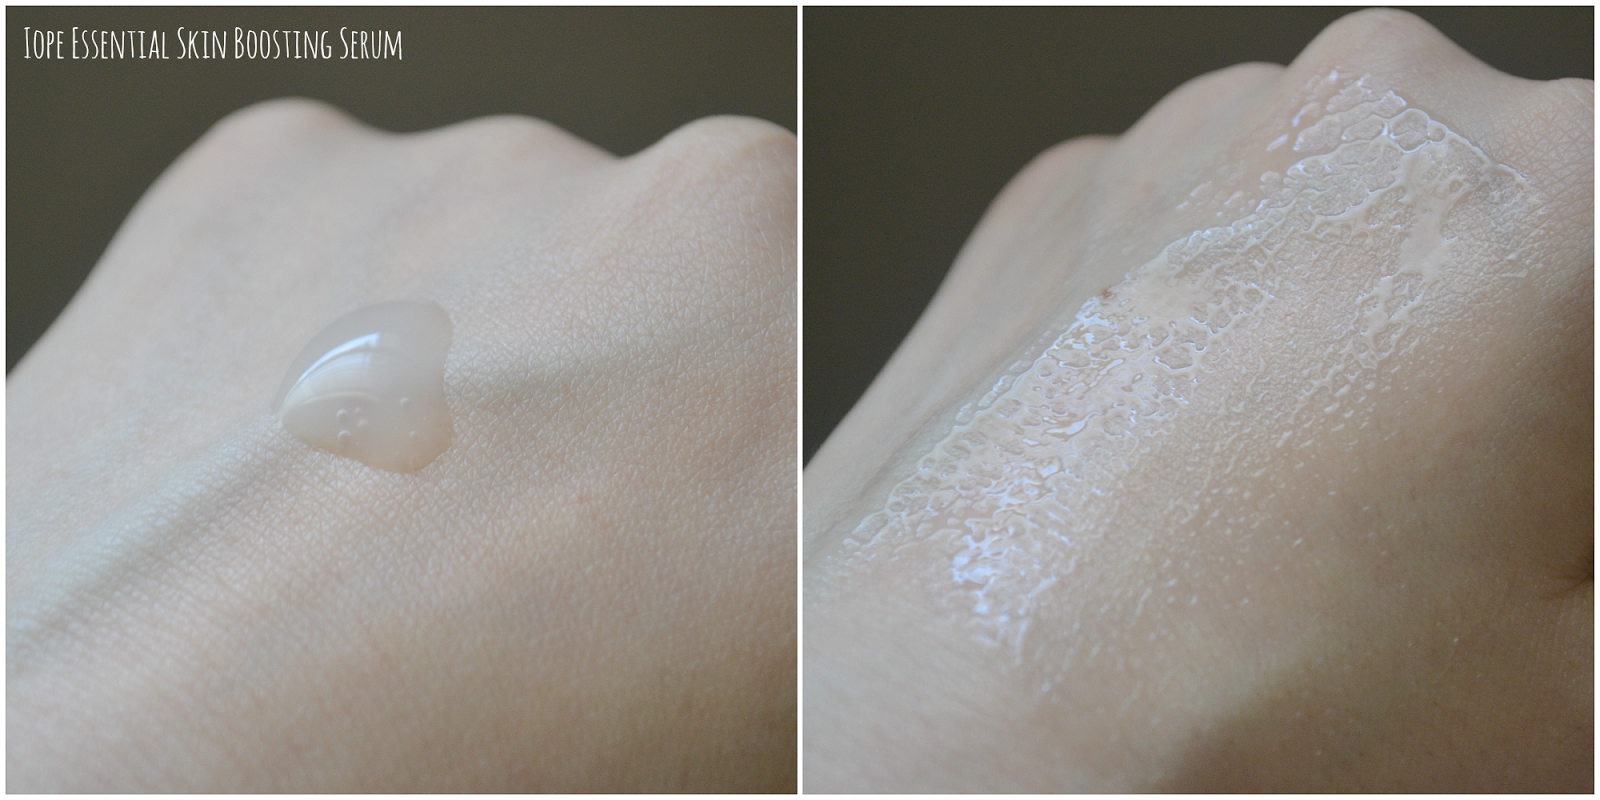 serum swatches: light and watery texture